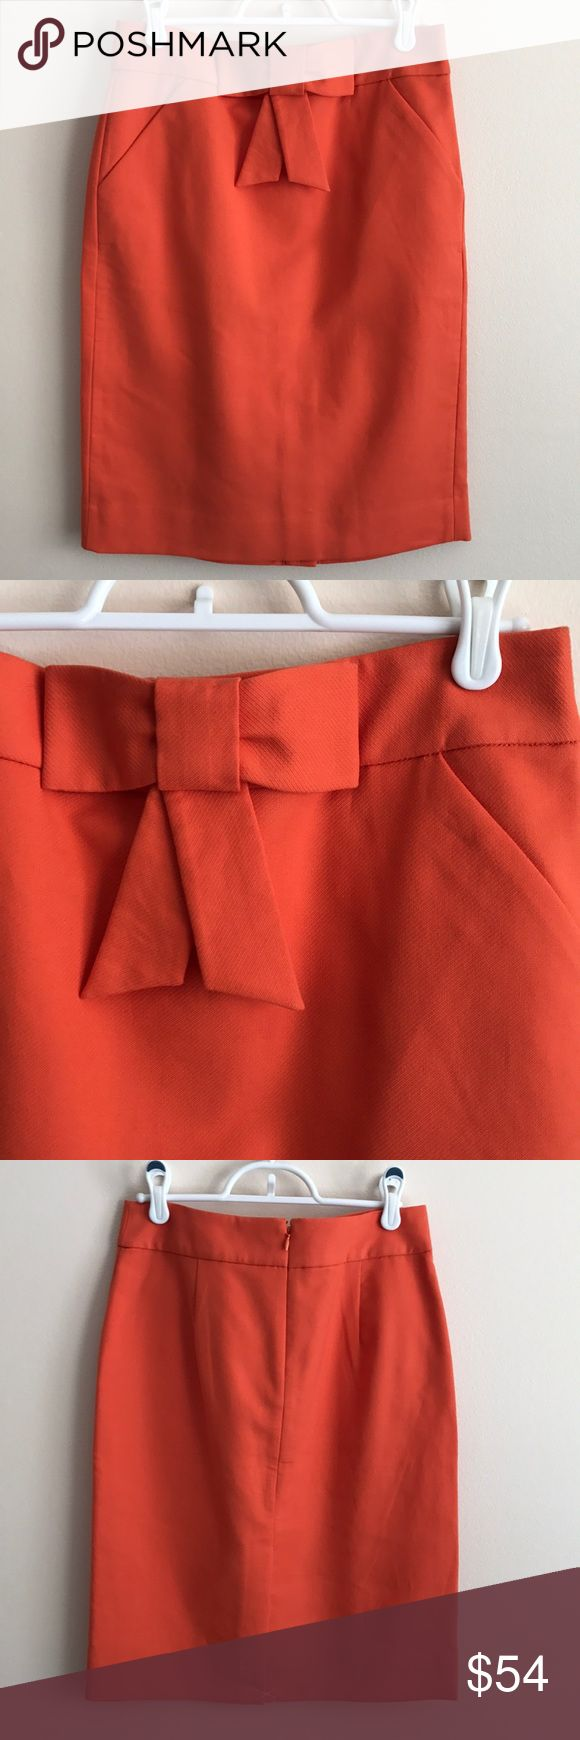 """Jcrew orange double serge bow pencil skirt Jcrew orange double serge cotton bow pencil skirt, a lighter orange than turned out in pics, 22"""" long and waist measures 14"""" across, pockets still sewn shut but can be opened - perfect condition never worn J. Crew Skirts Pencil"""